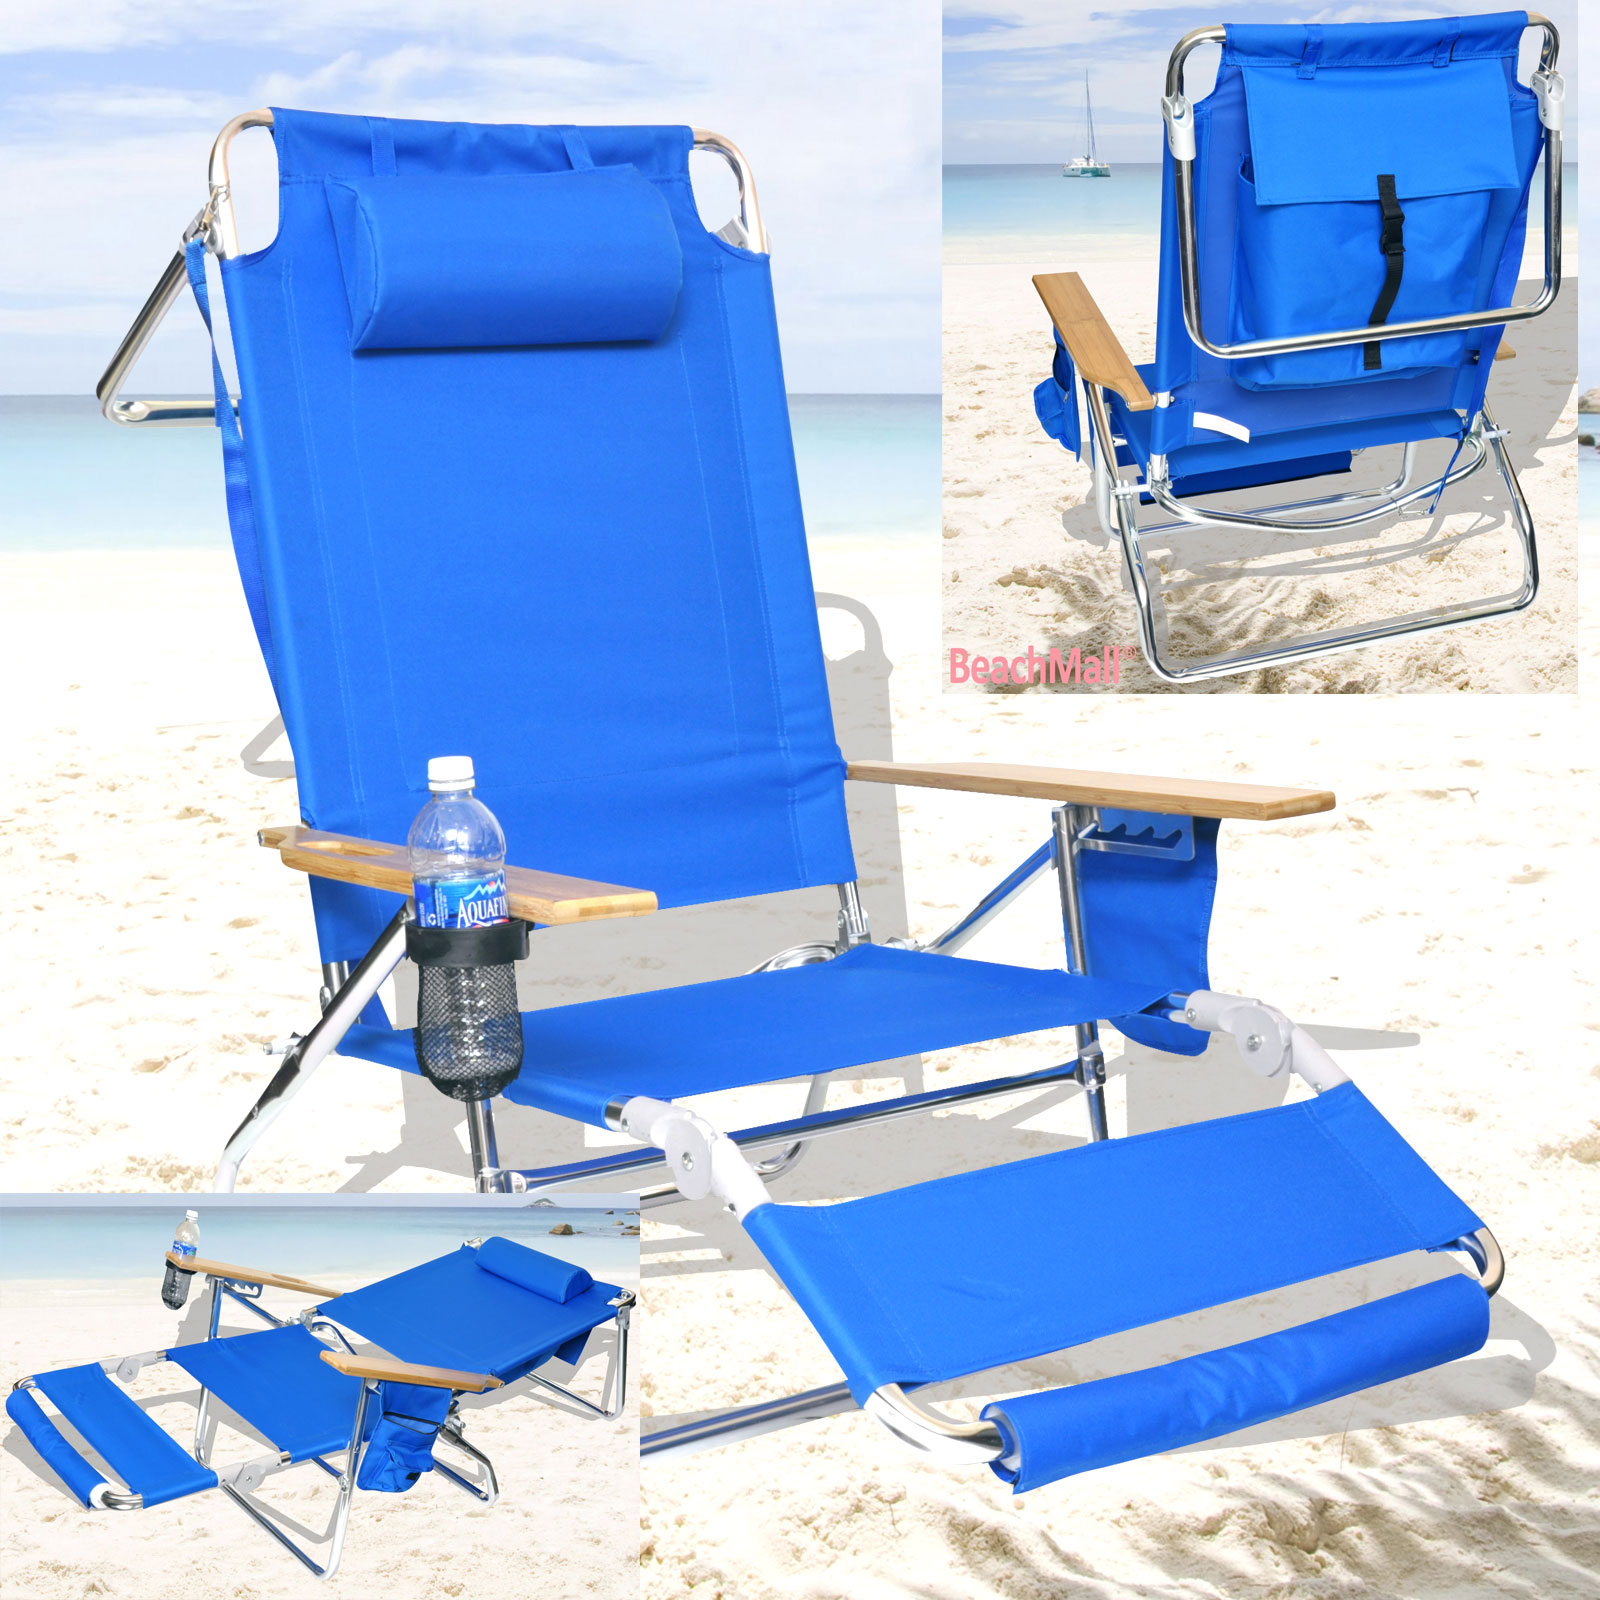 Beach Lounge Chairs Deluxe 3 In 1 Beach Chair Lounger W Drink Holder And Large Storage Pouch